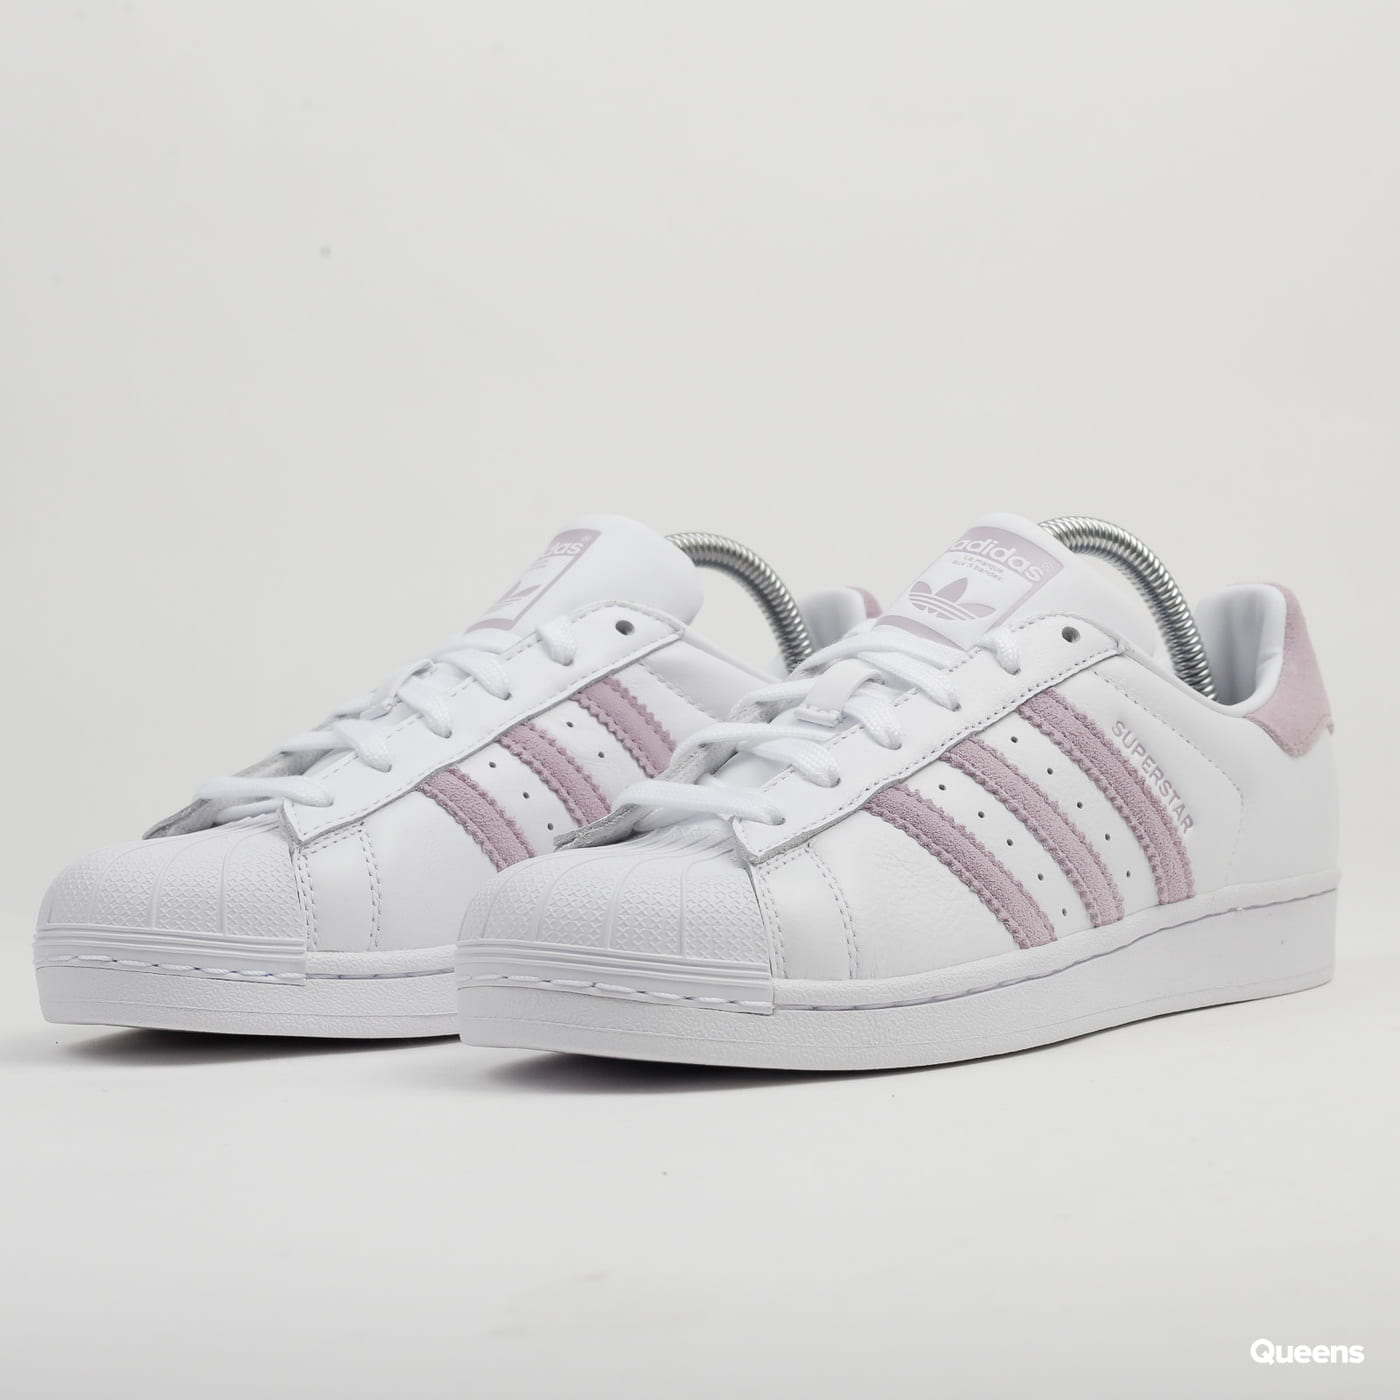 official photos ff5da 63005 adidas Originals Superstar W ftwwht / sofvis / cblack